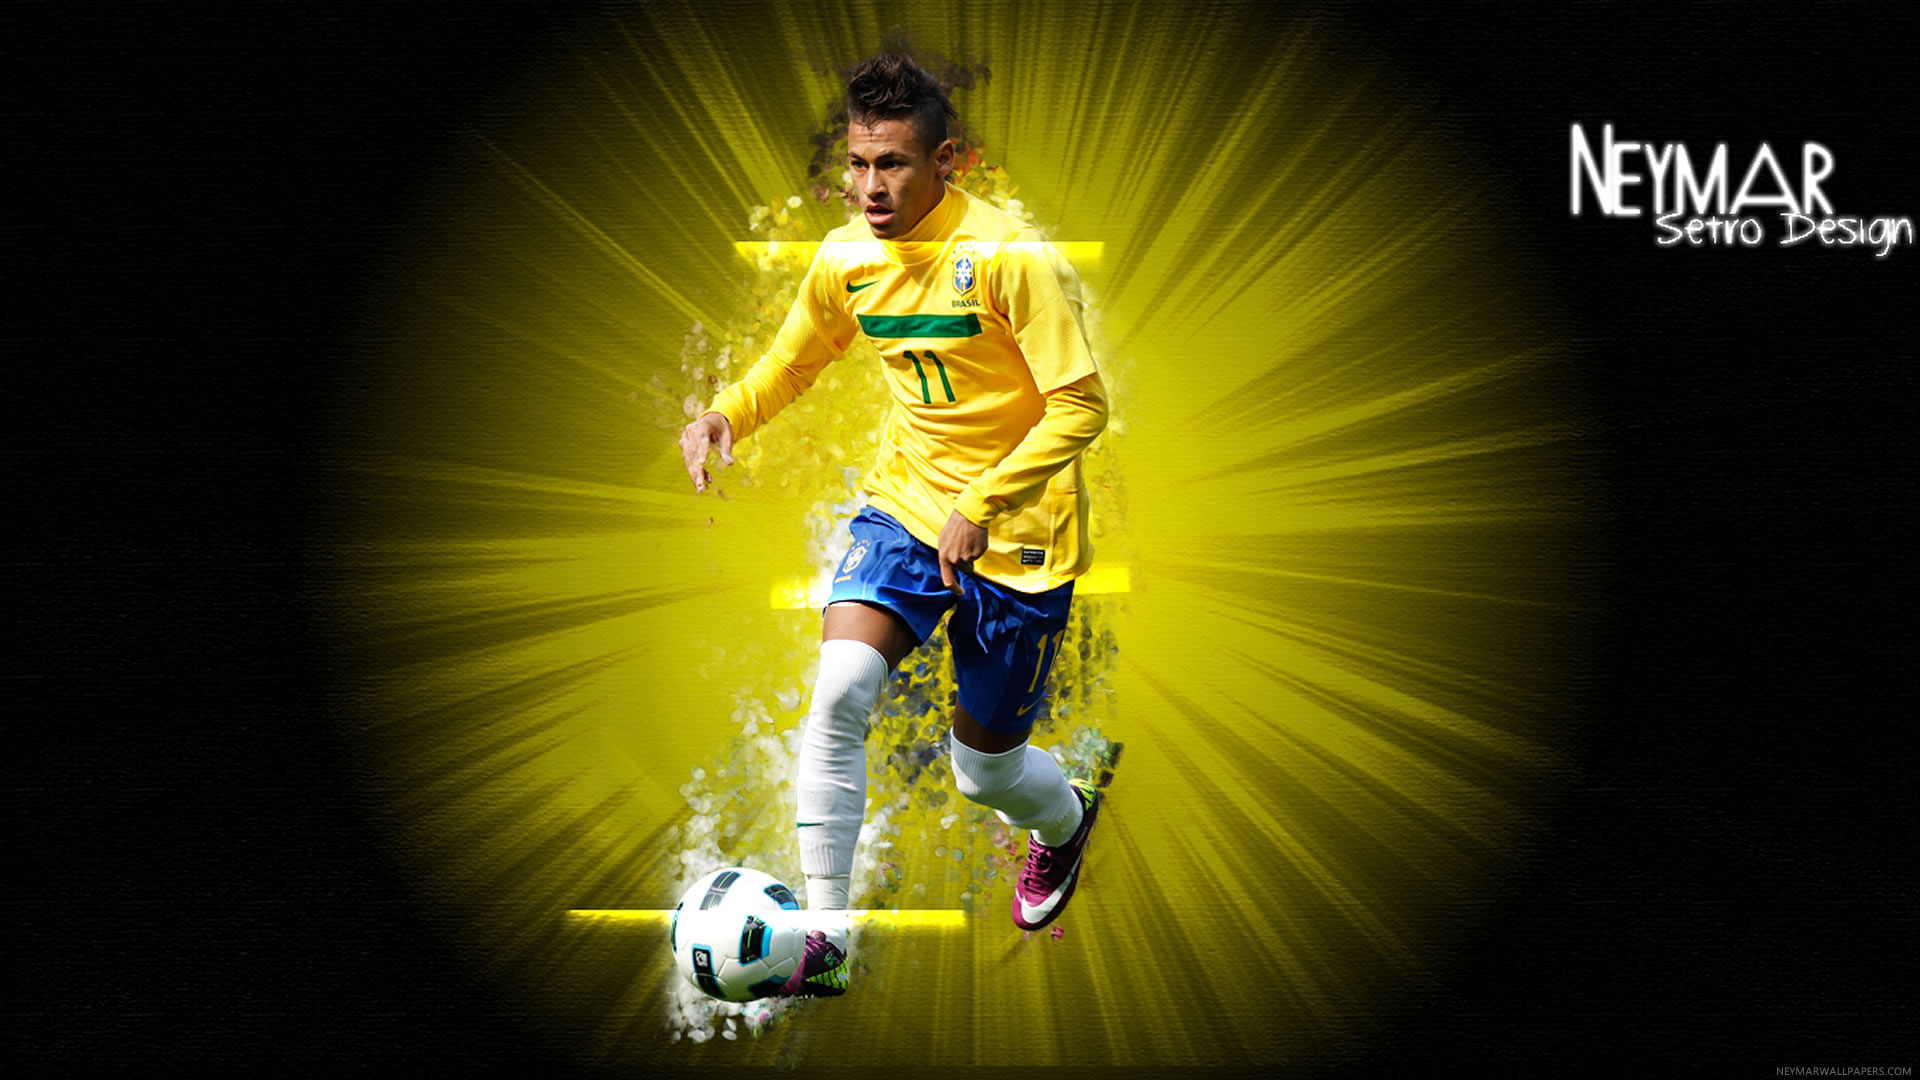 Neymar wallpaper by Setro